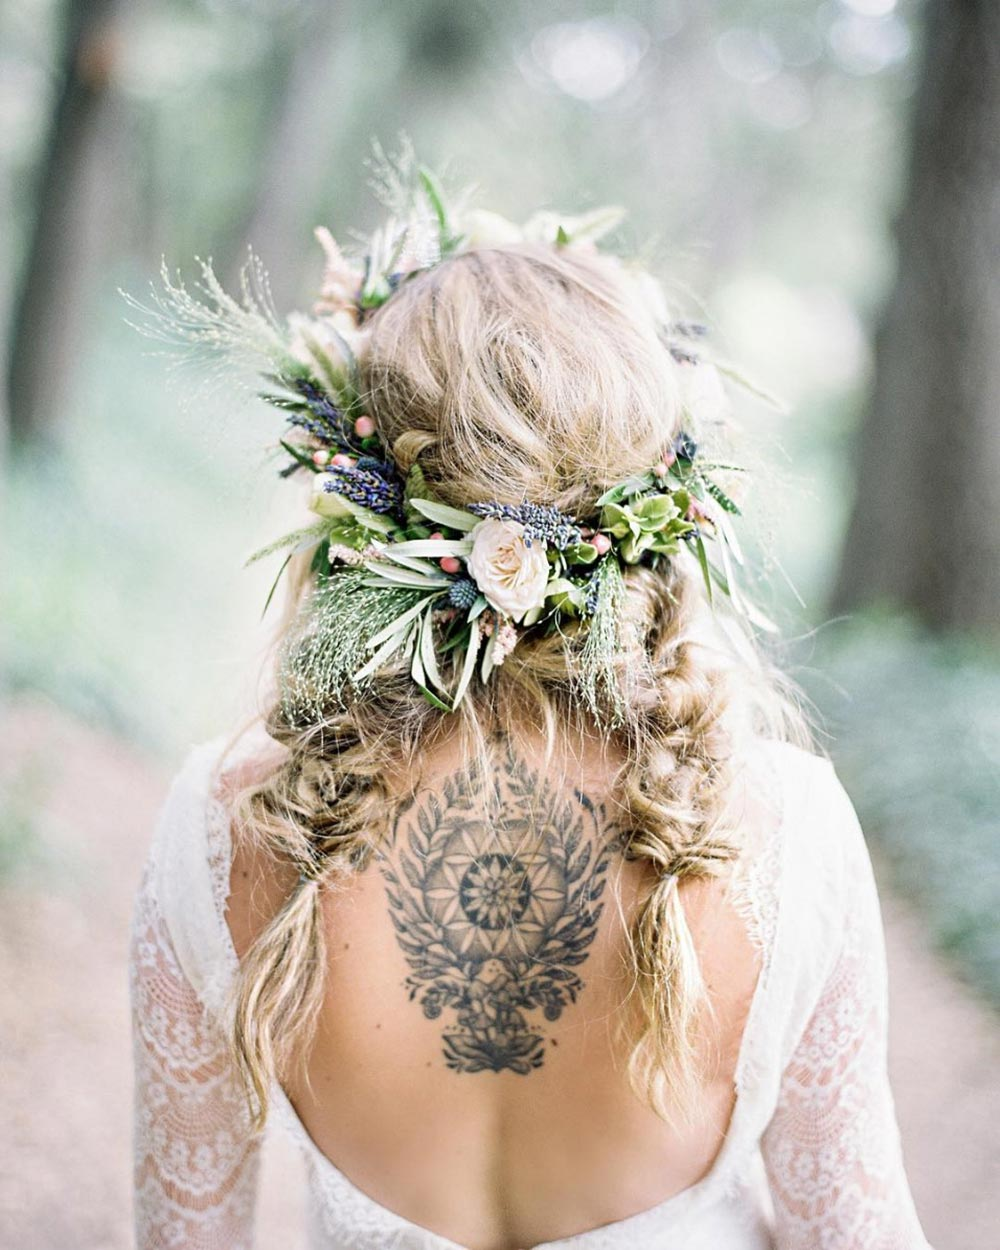 boho wedding hairstyle with braids